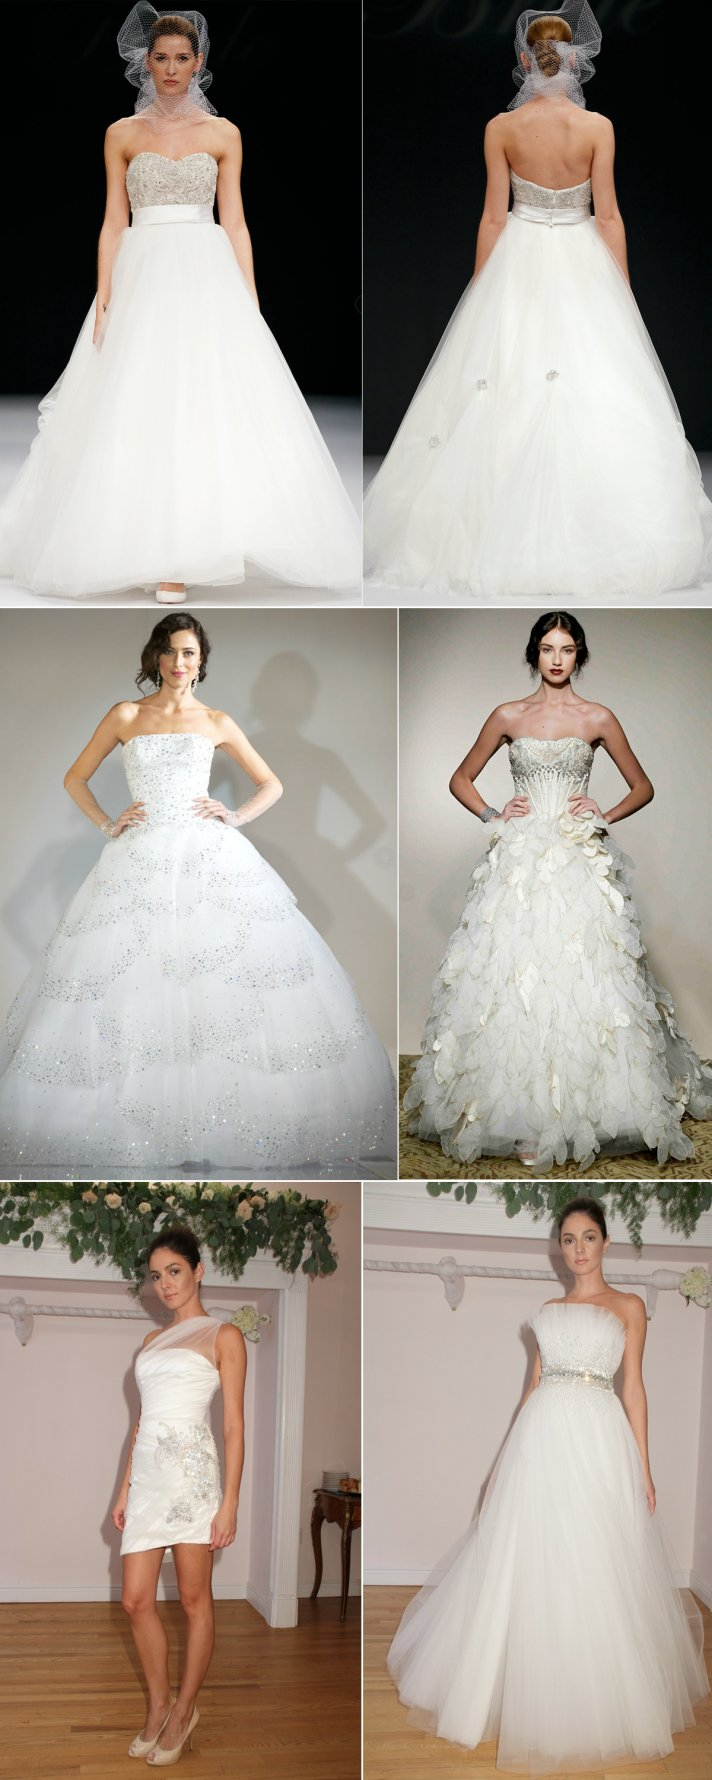 bejewled wedding dresses 2012 bridal gown beaded